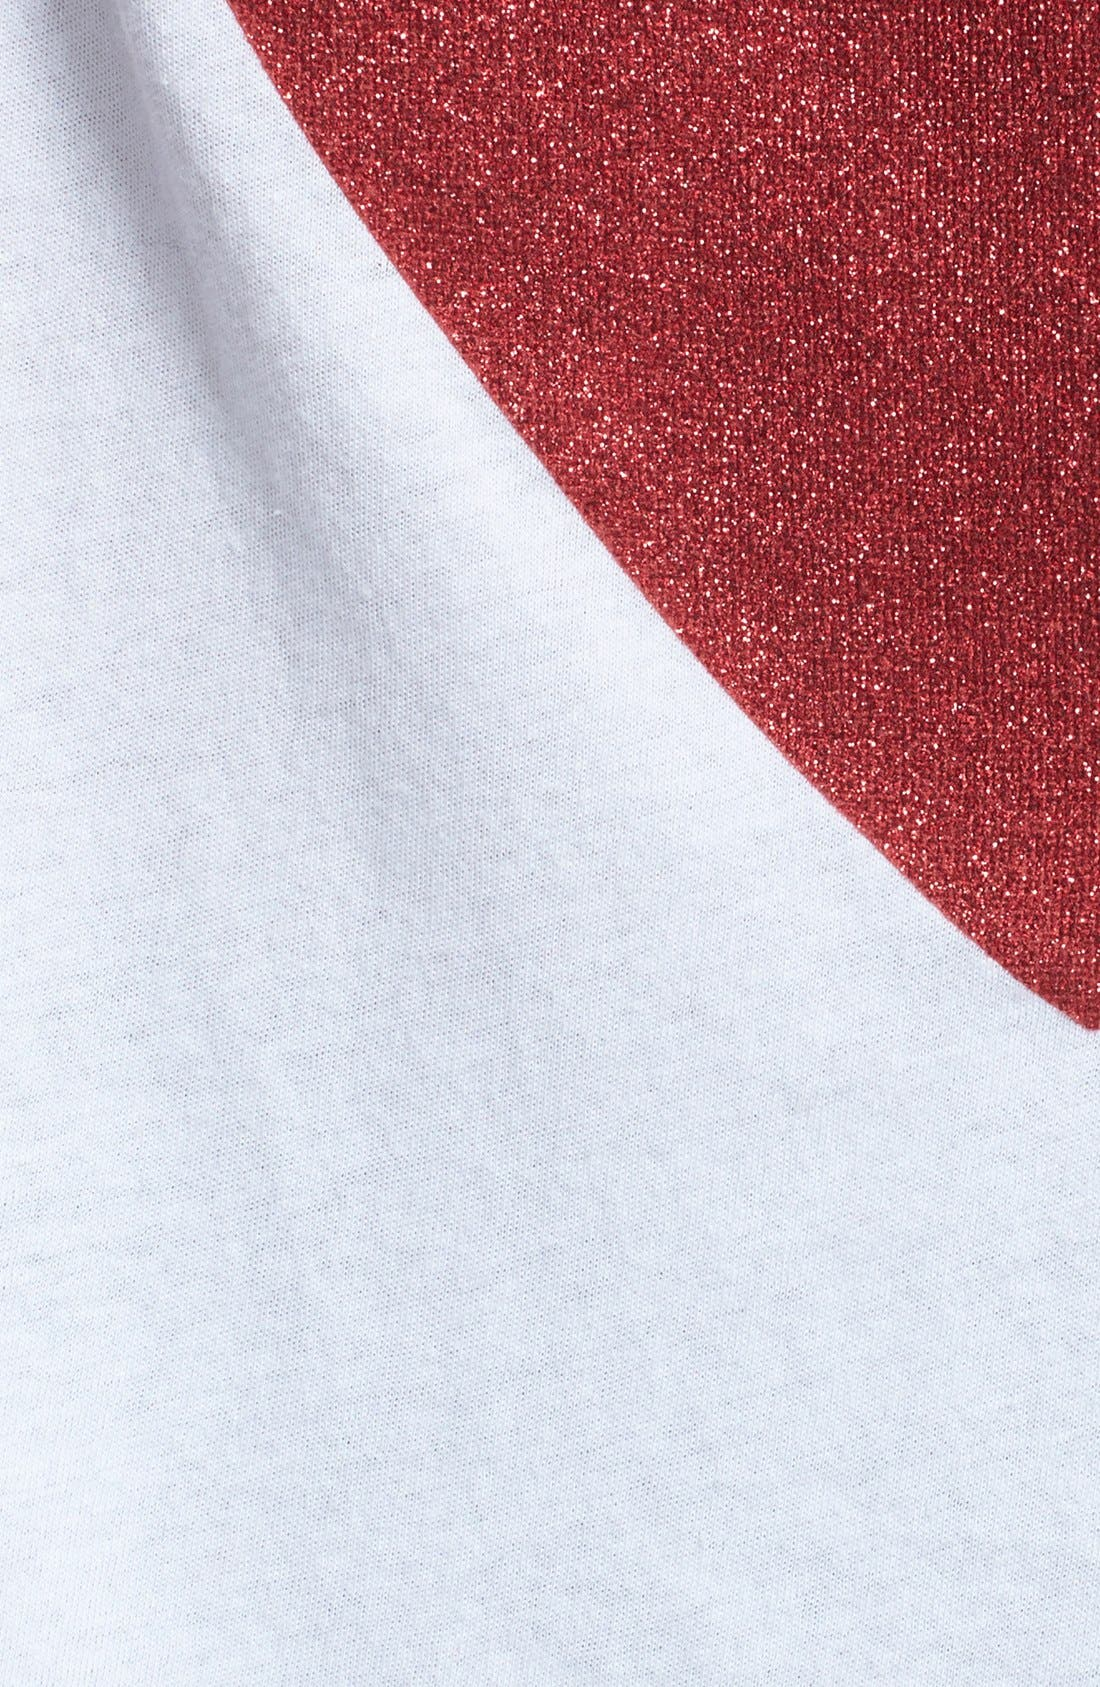 Alternate Image 3  - Wildfox 'Sparkle Heart' Crewneck Cotton Tee (Special Purchase)